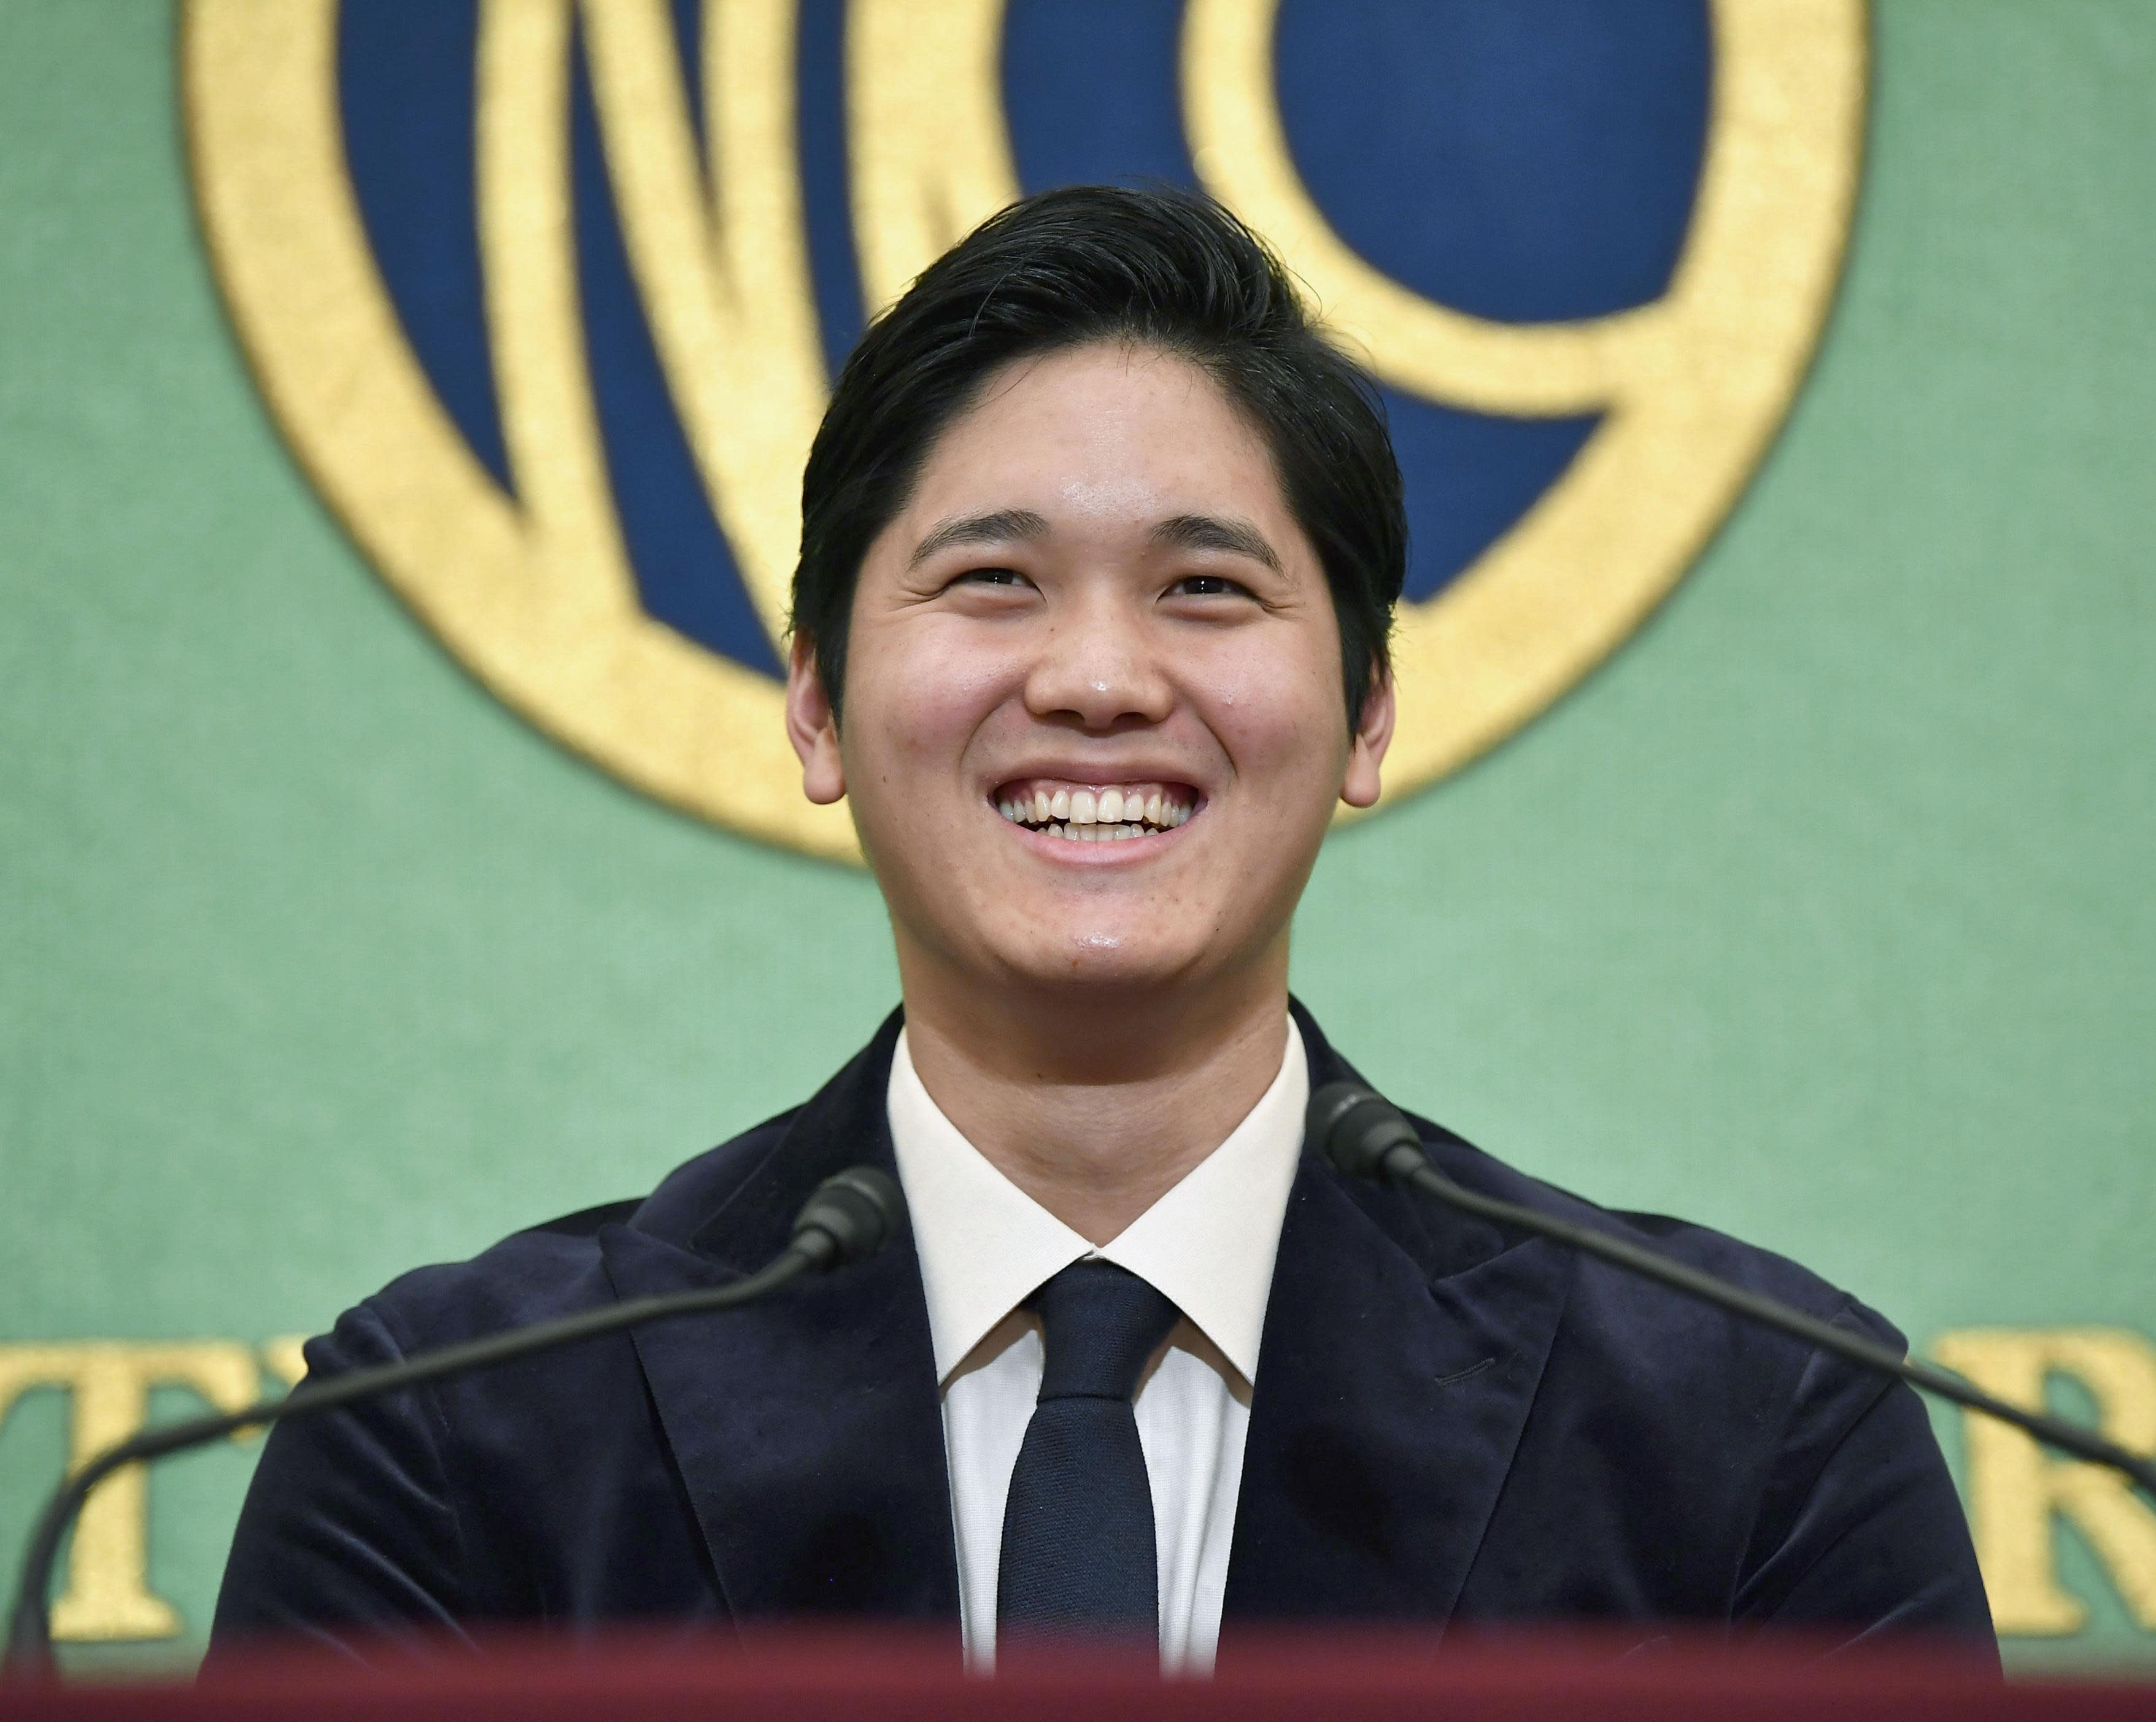 Los Angeles Angels two-way player Shohei Ohtani smiles during a press conference in Tokyo, Thursday, Nov. 22, 2018. Ohtani returned home after being picked for American League Rookie of the Year. (Tsuyoshi Ueda/Kyodo News via AP)